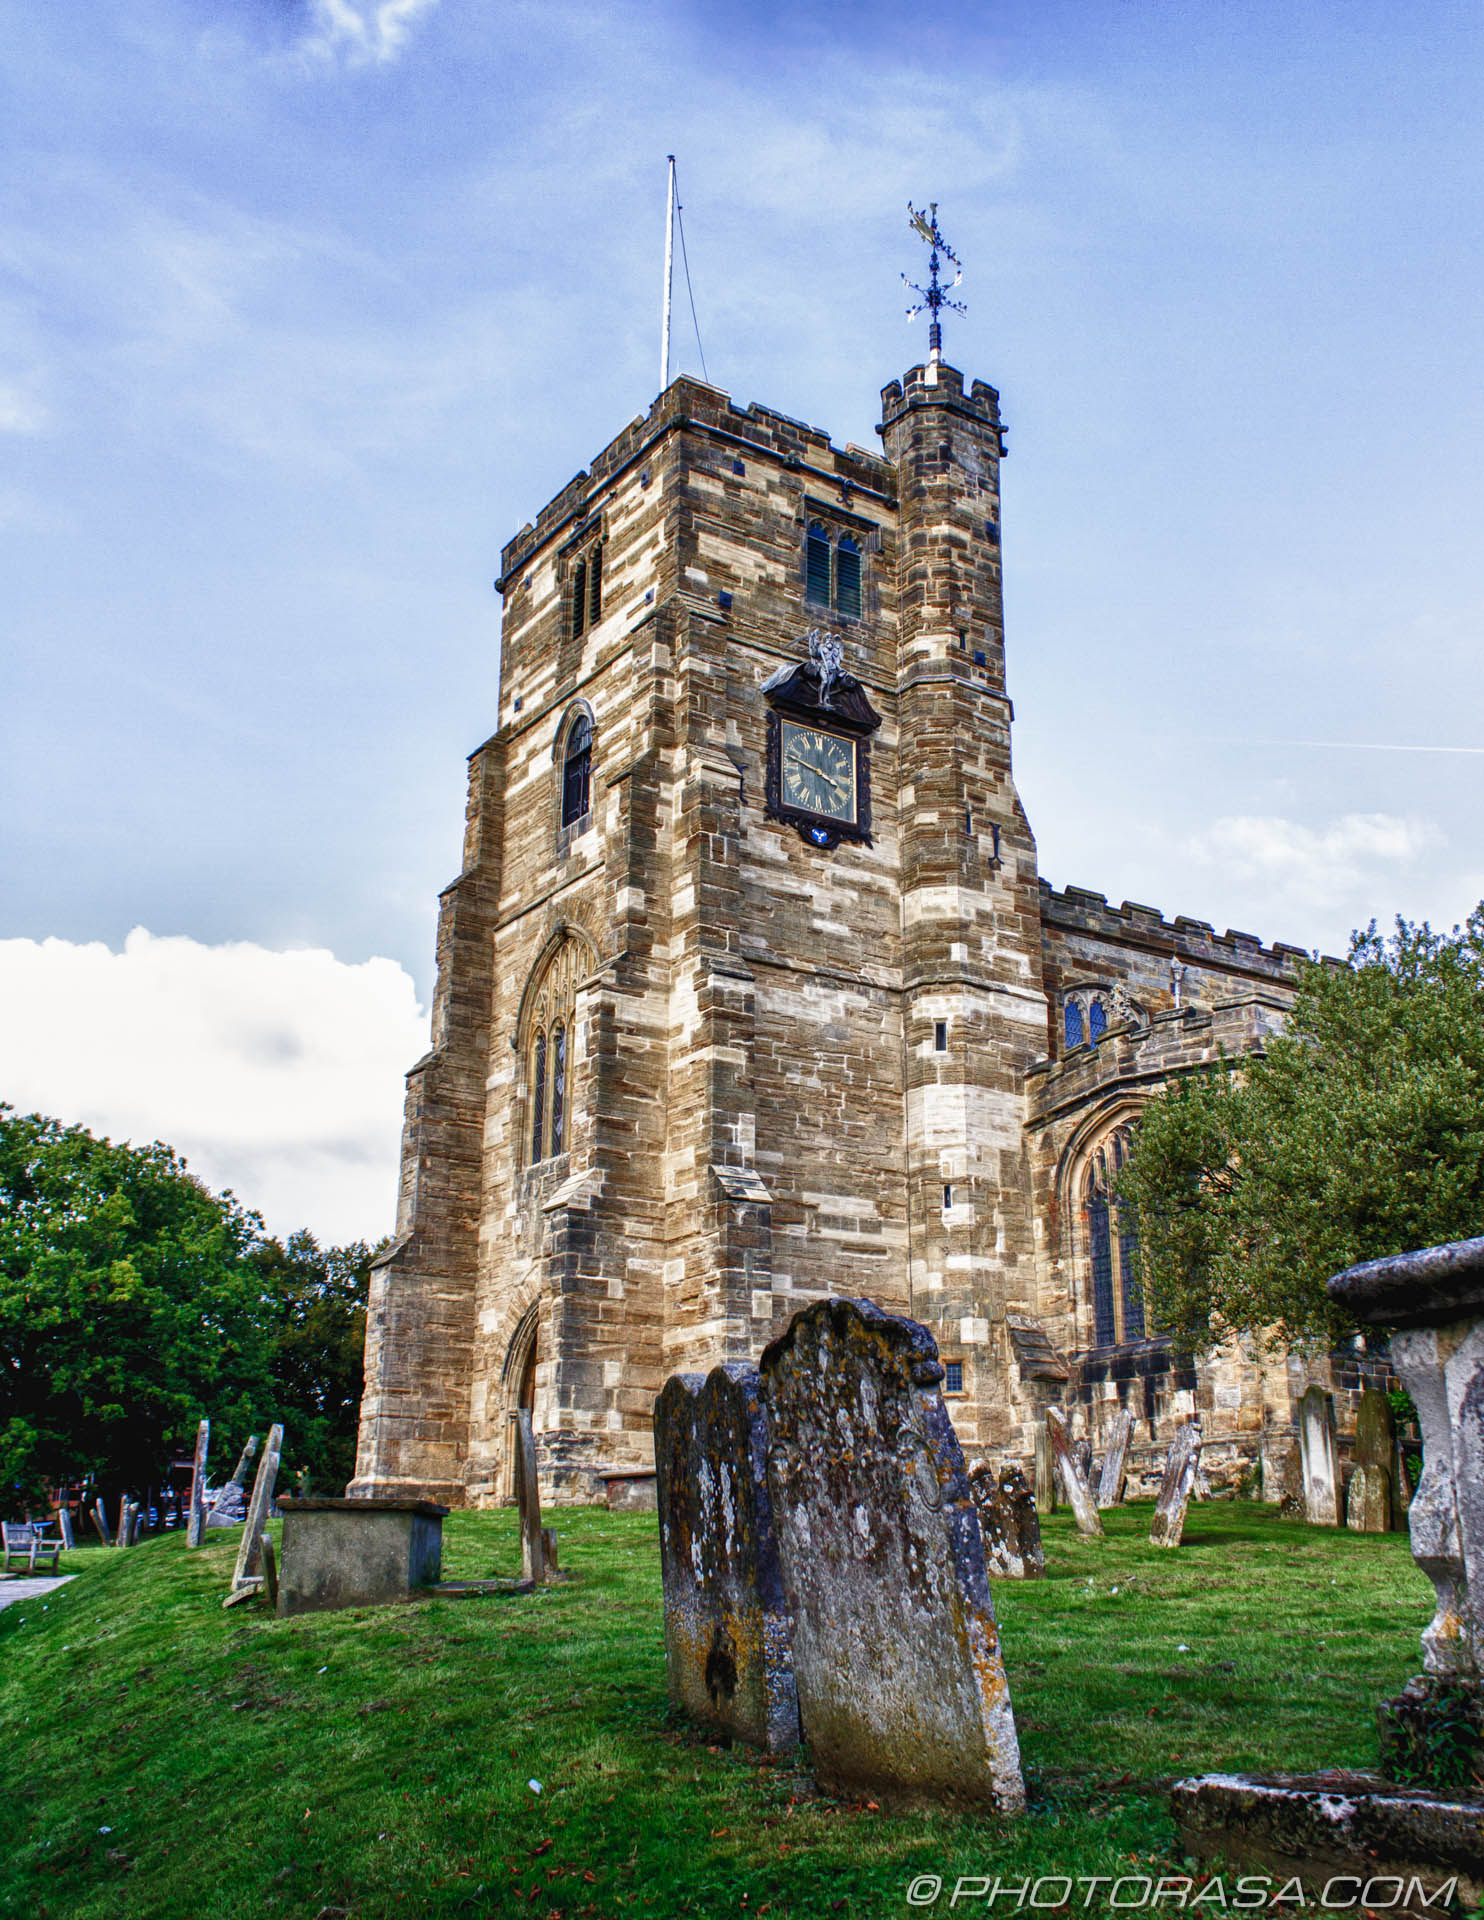 http://photorasa.com/st-dunstans-church-cranbrook/st-dunstans-church-cranbrook-2/